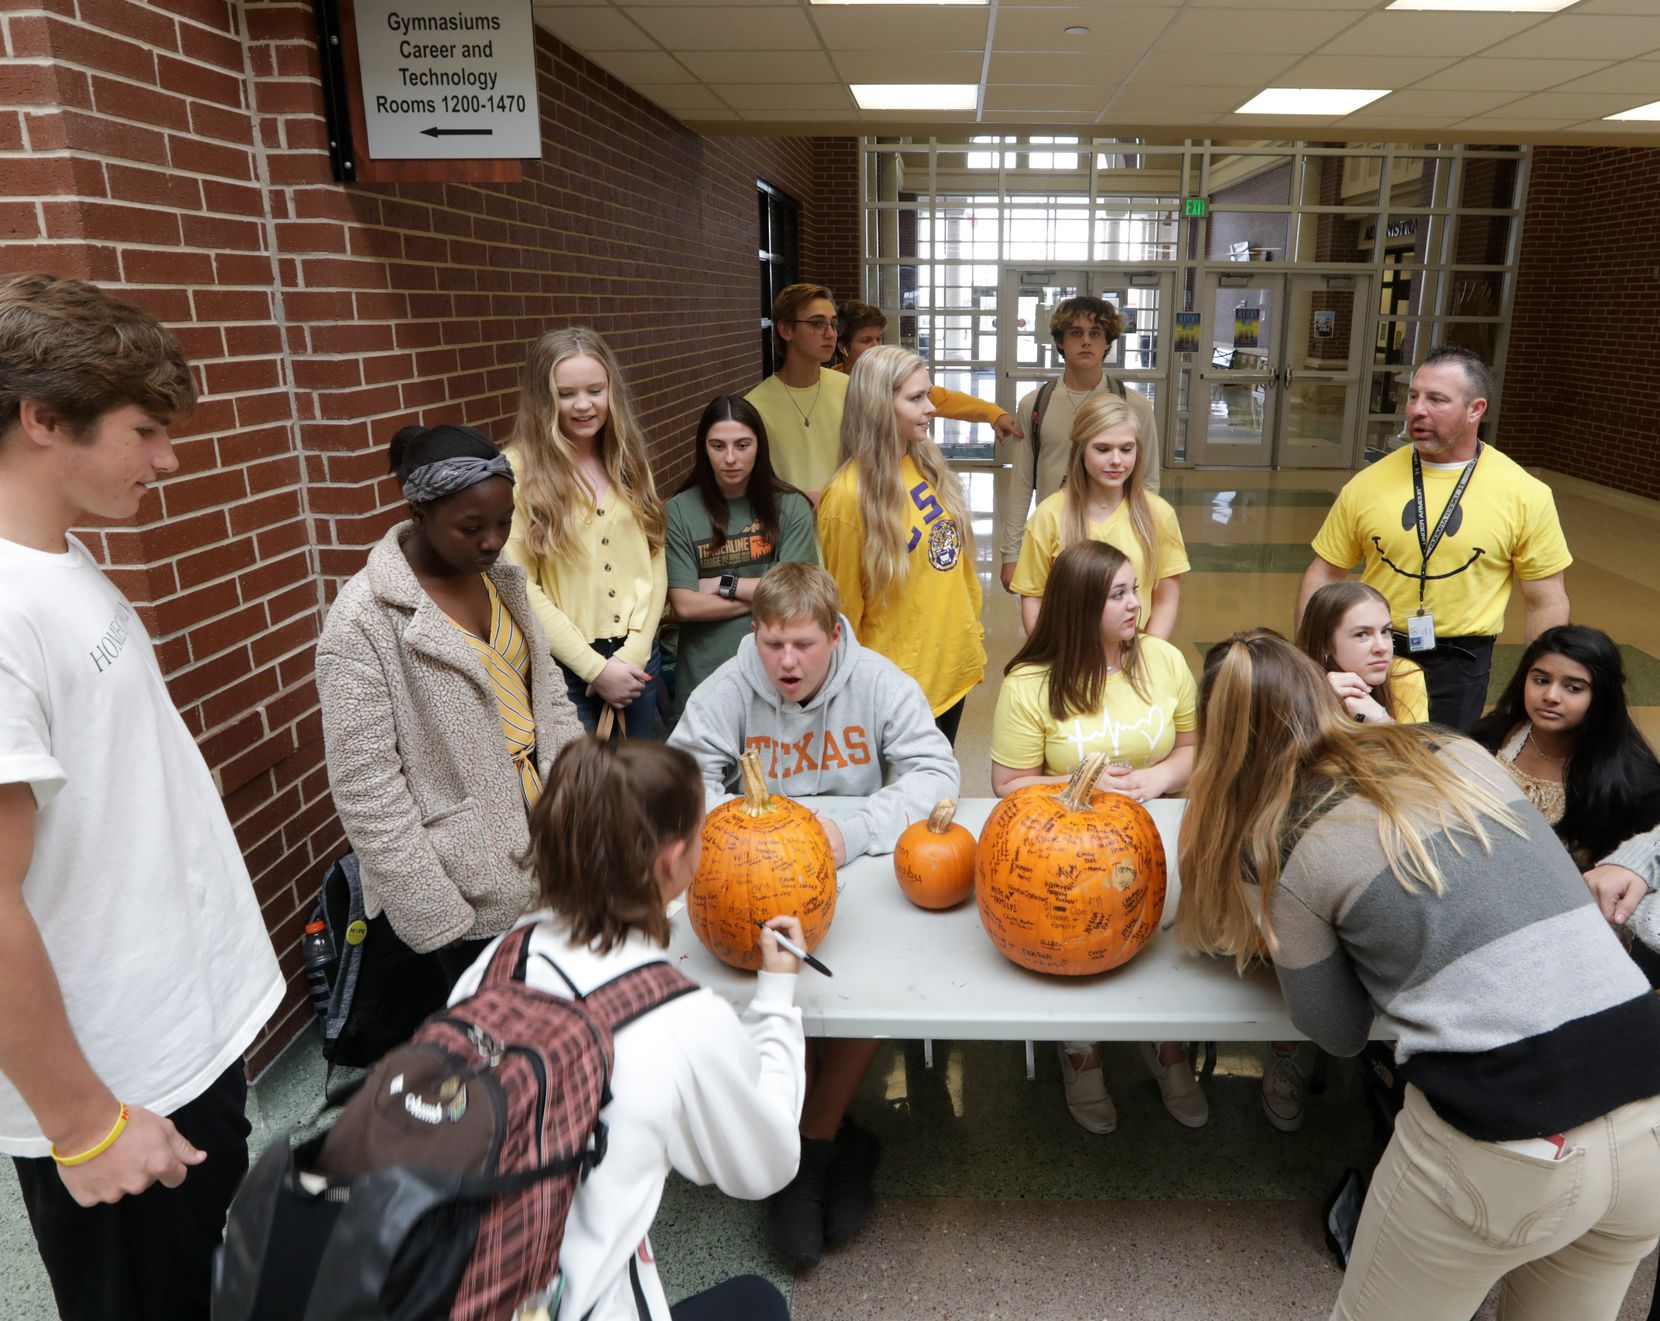 In addition to seeking out at-risk students, Hope Squad members, who often wear yellow — the color for suicide  prevention — promote a more caring culture throughout Prosper High School. Last week they encouraged students during their lunch break to sign pumpkins with their names and a phrase telling others what they are most thankful for.